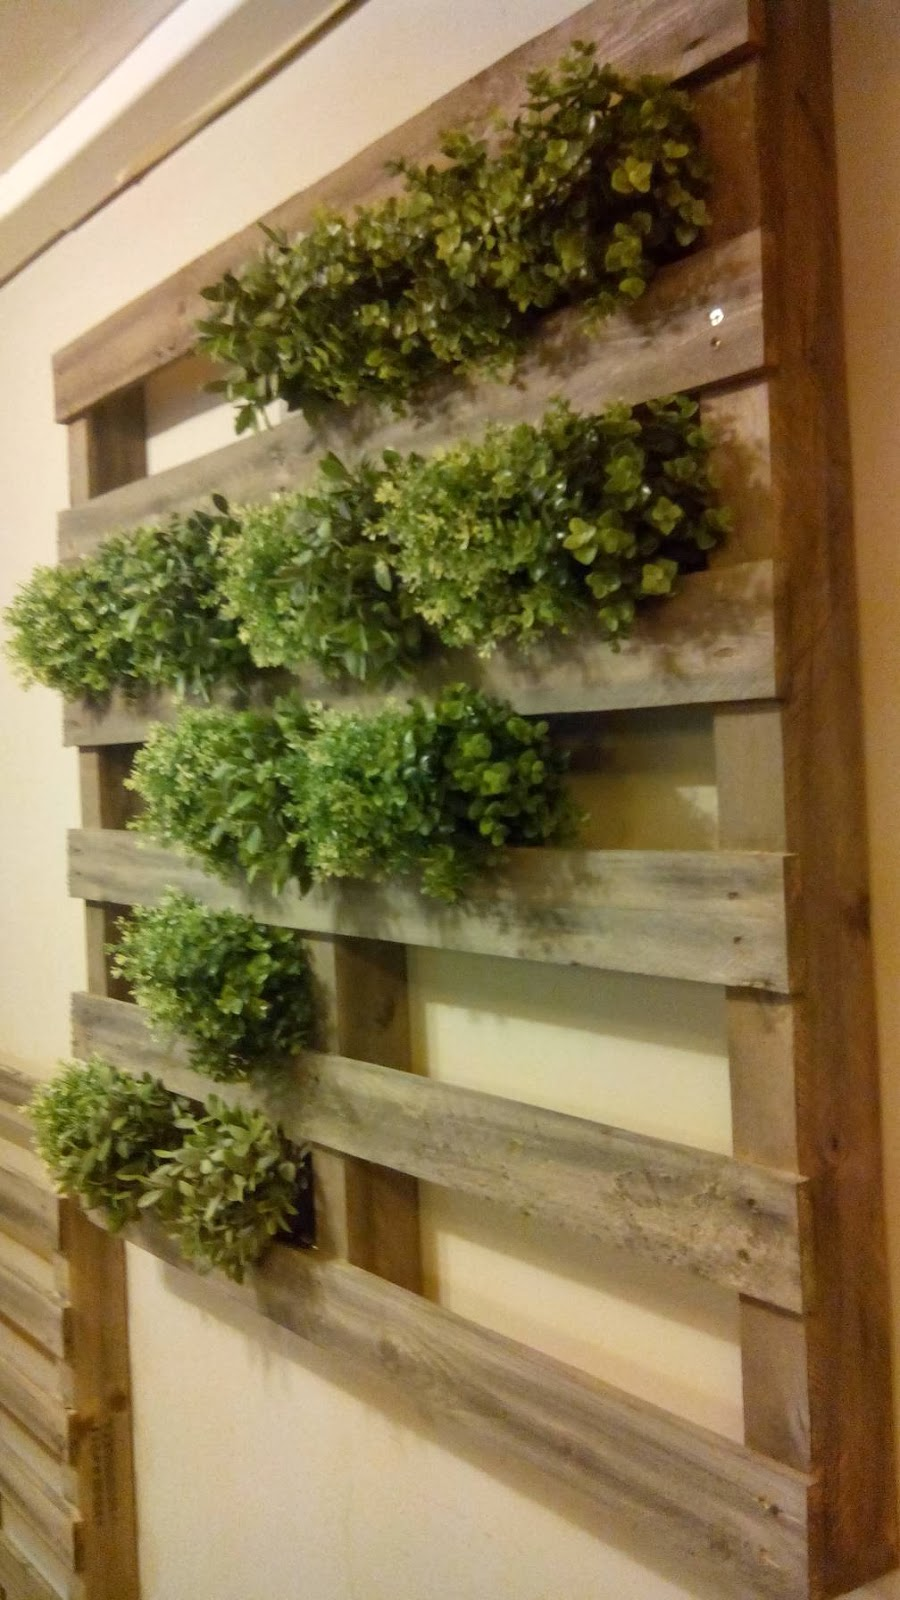 Jard n vertical hecho con palets for Decoracion palets jardin